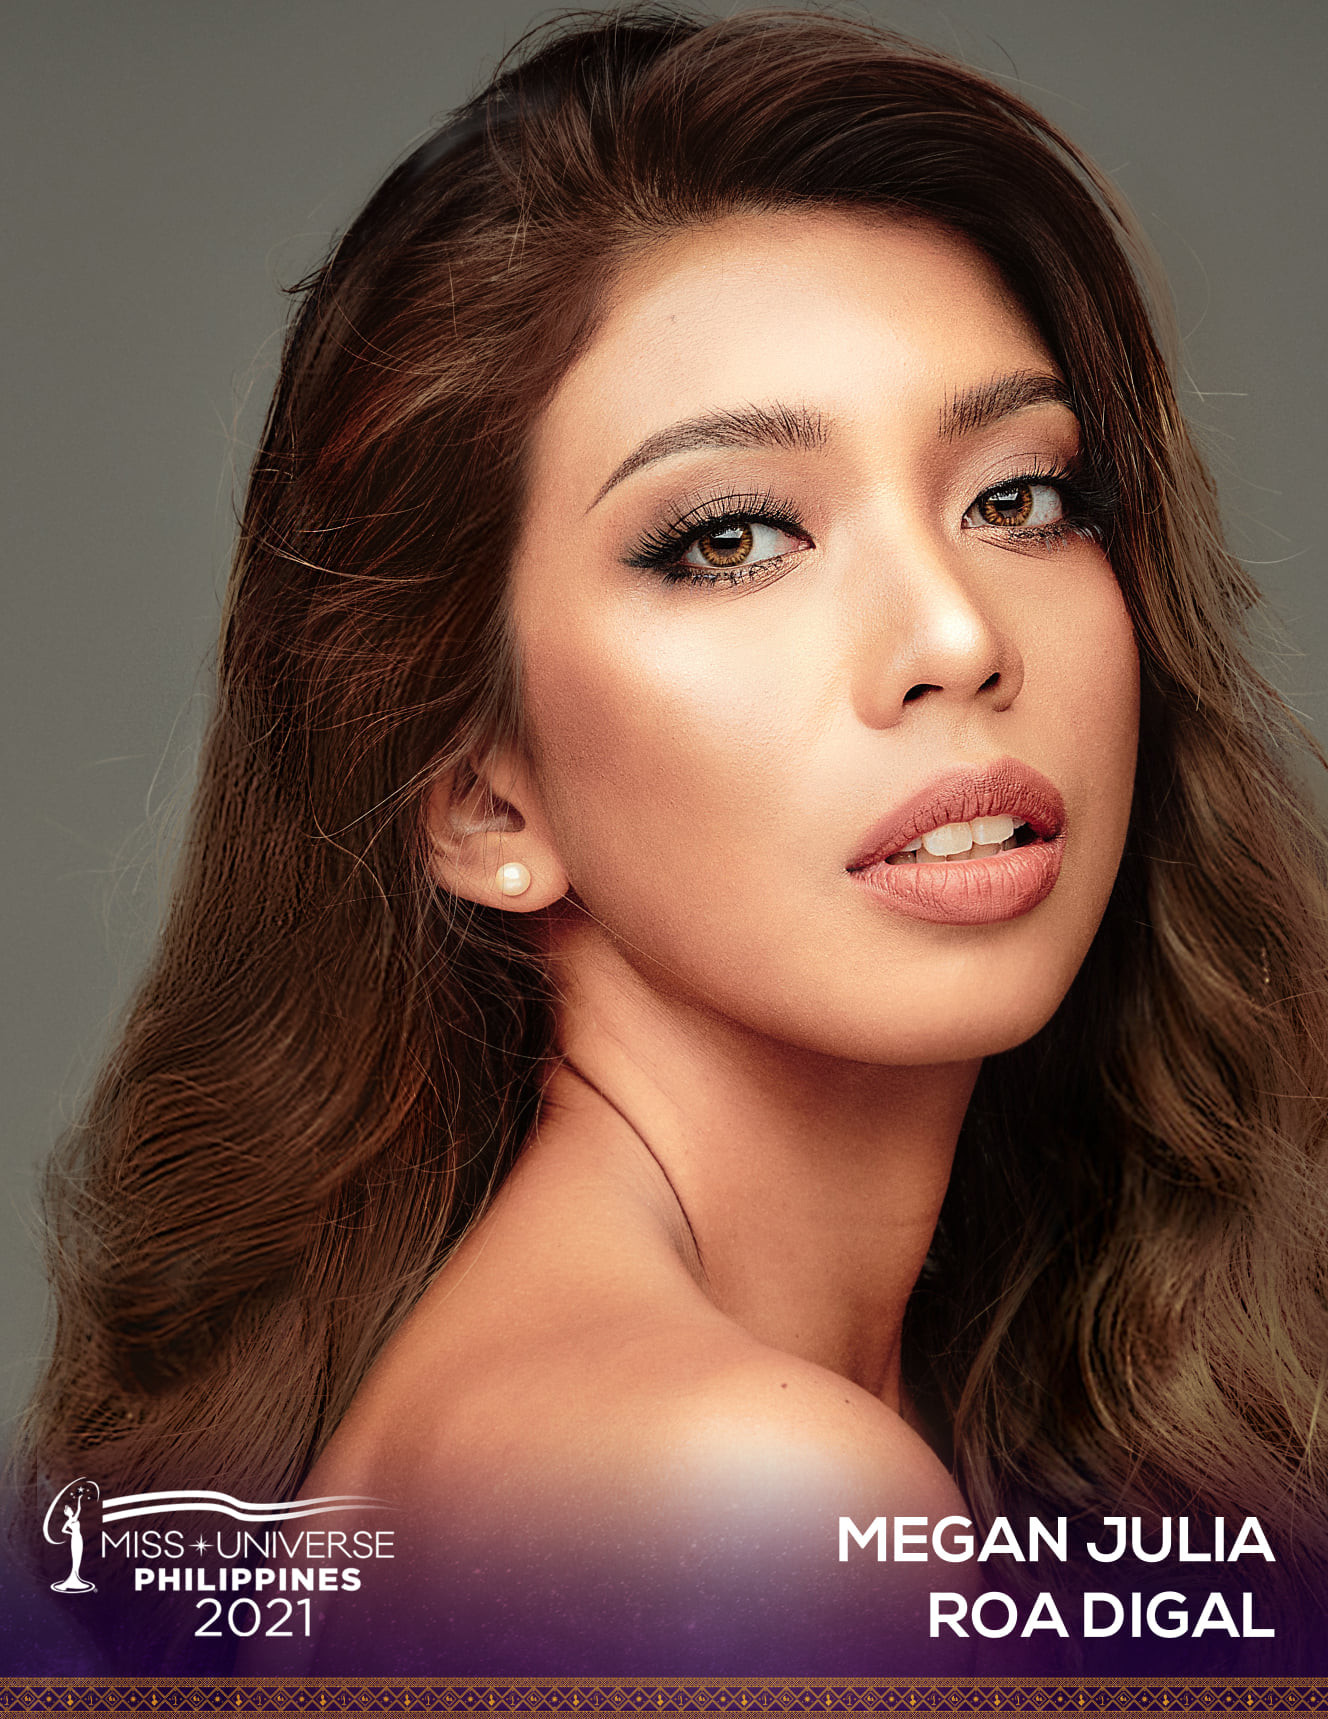 pre-candidatas a miss universe philippines 2021. AlFbDJ